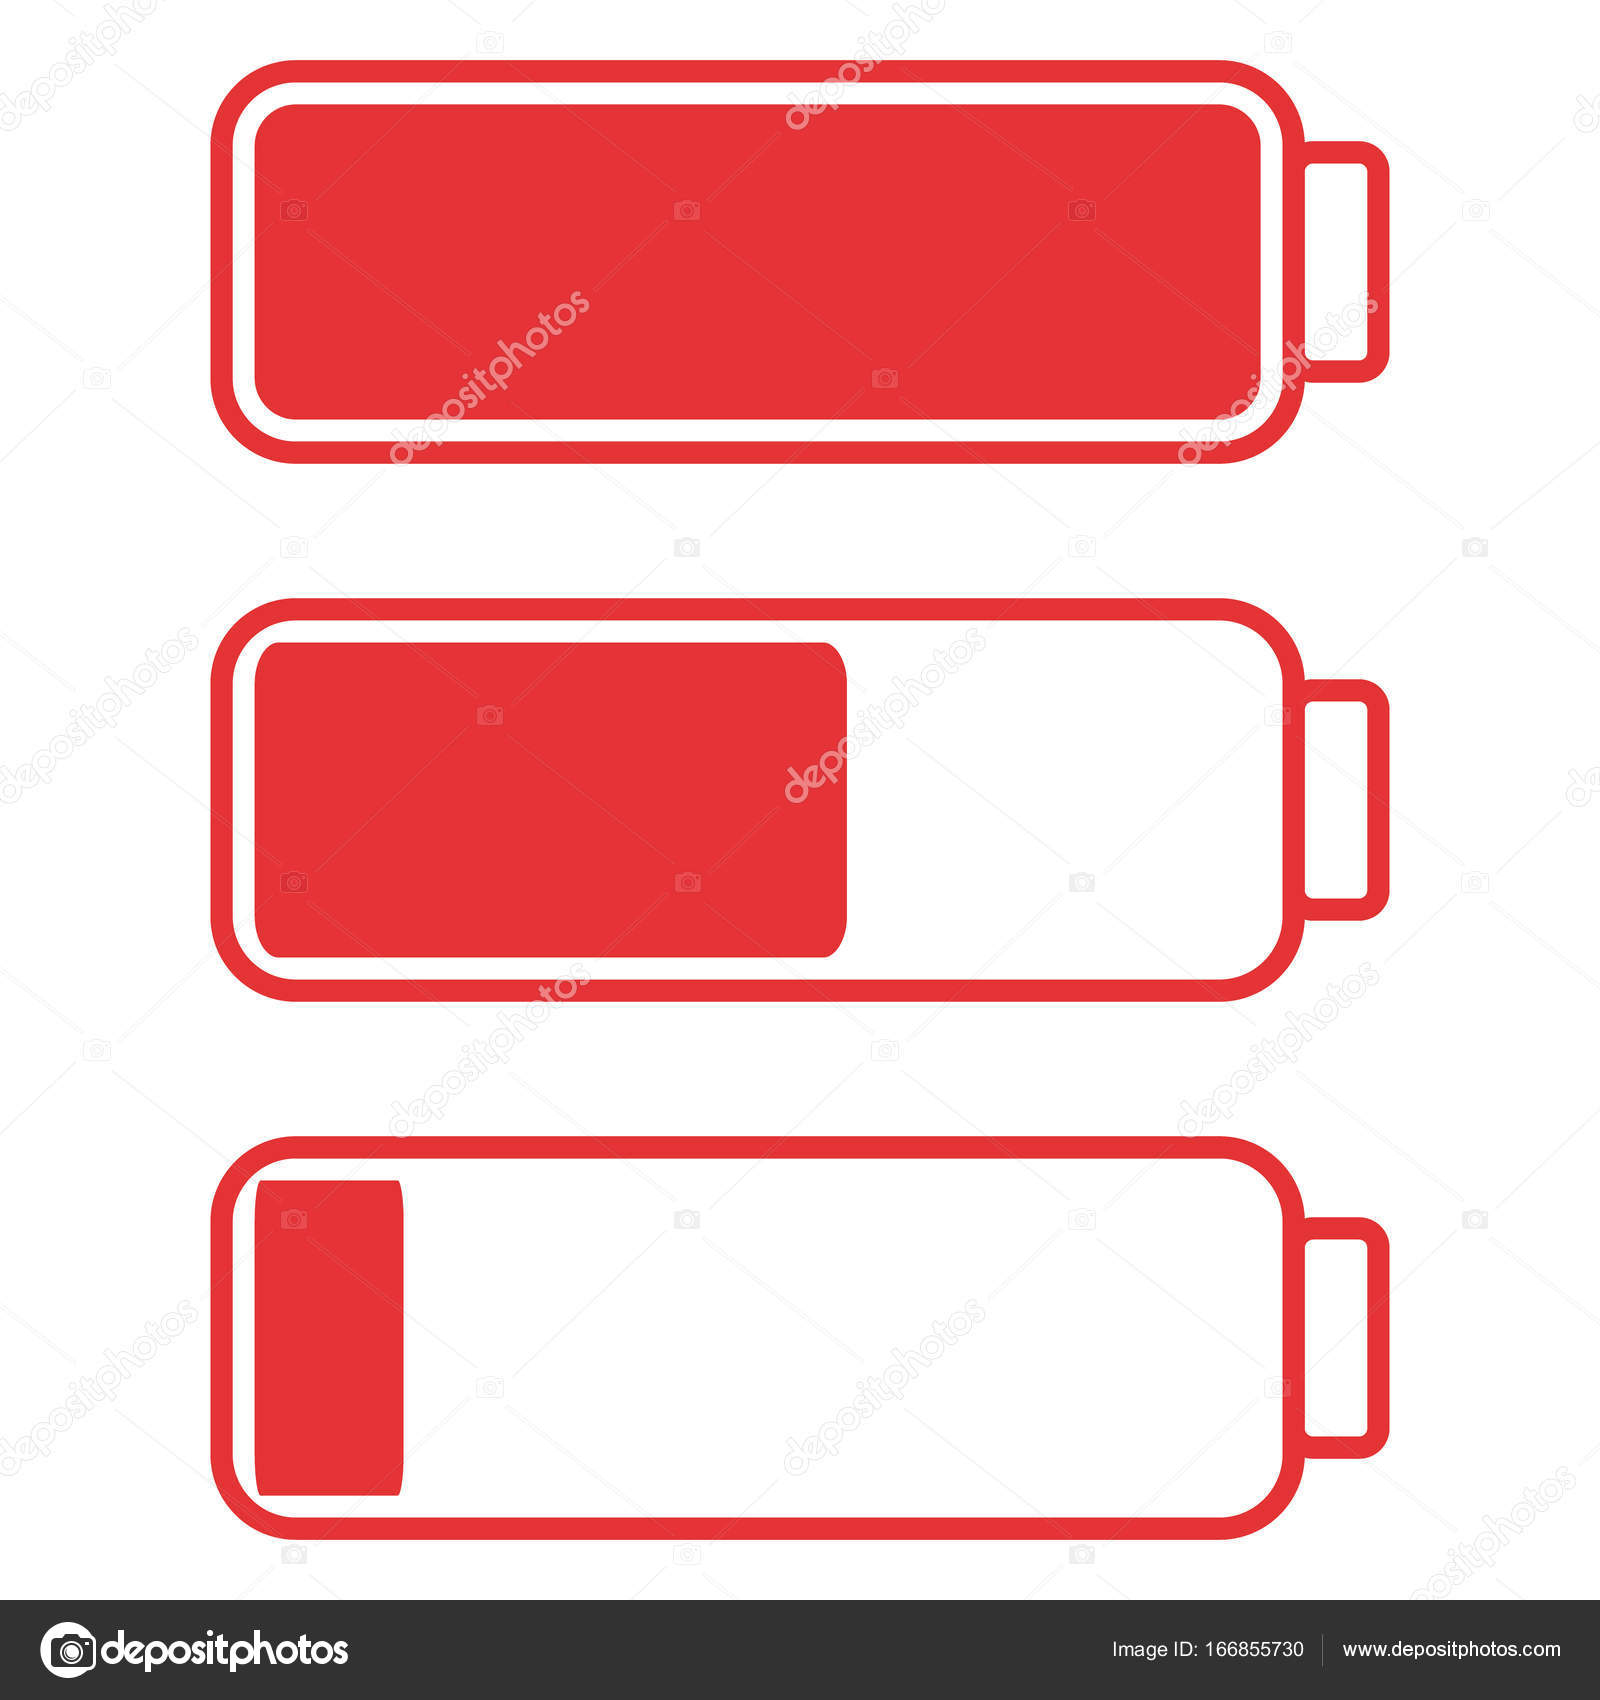 Smartphone or cell phone low battery icon. Low energy symbol. Flat ...